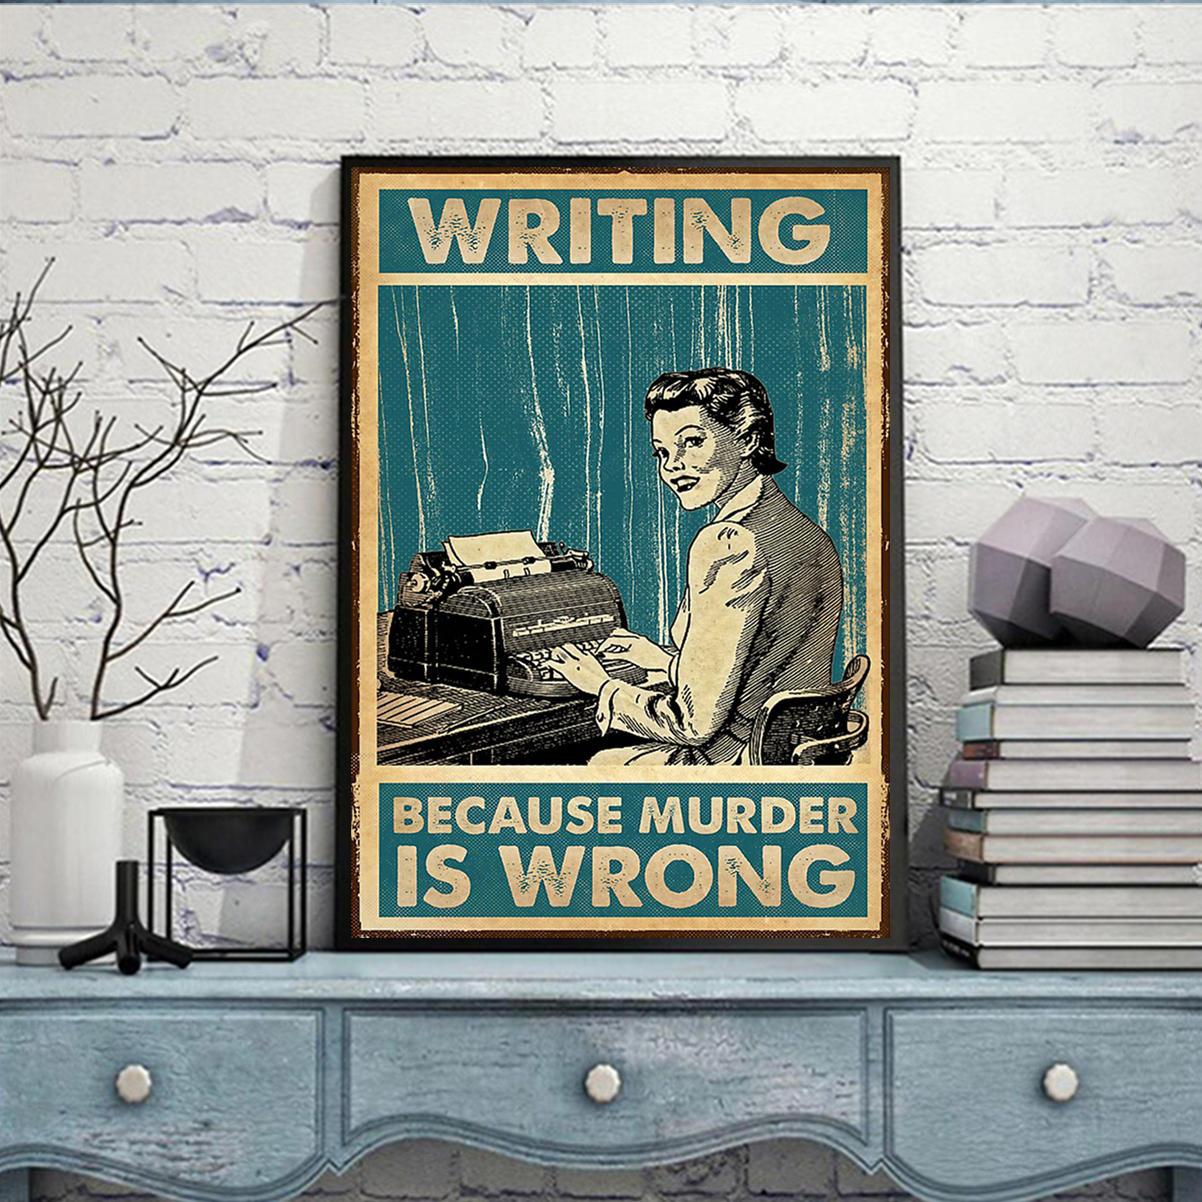 Writing because murder is wrong poster A2